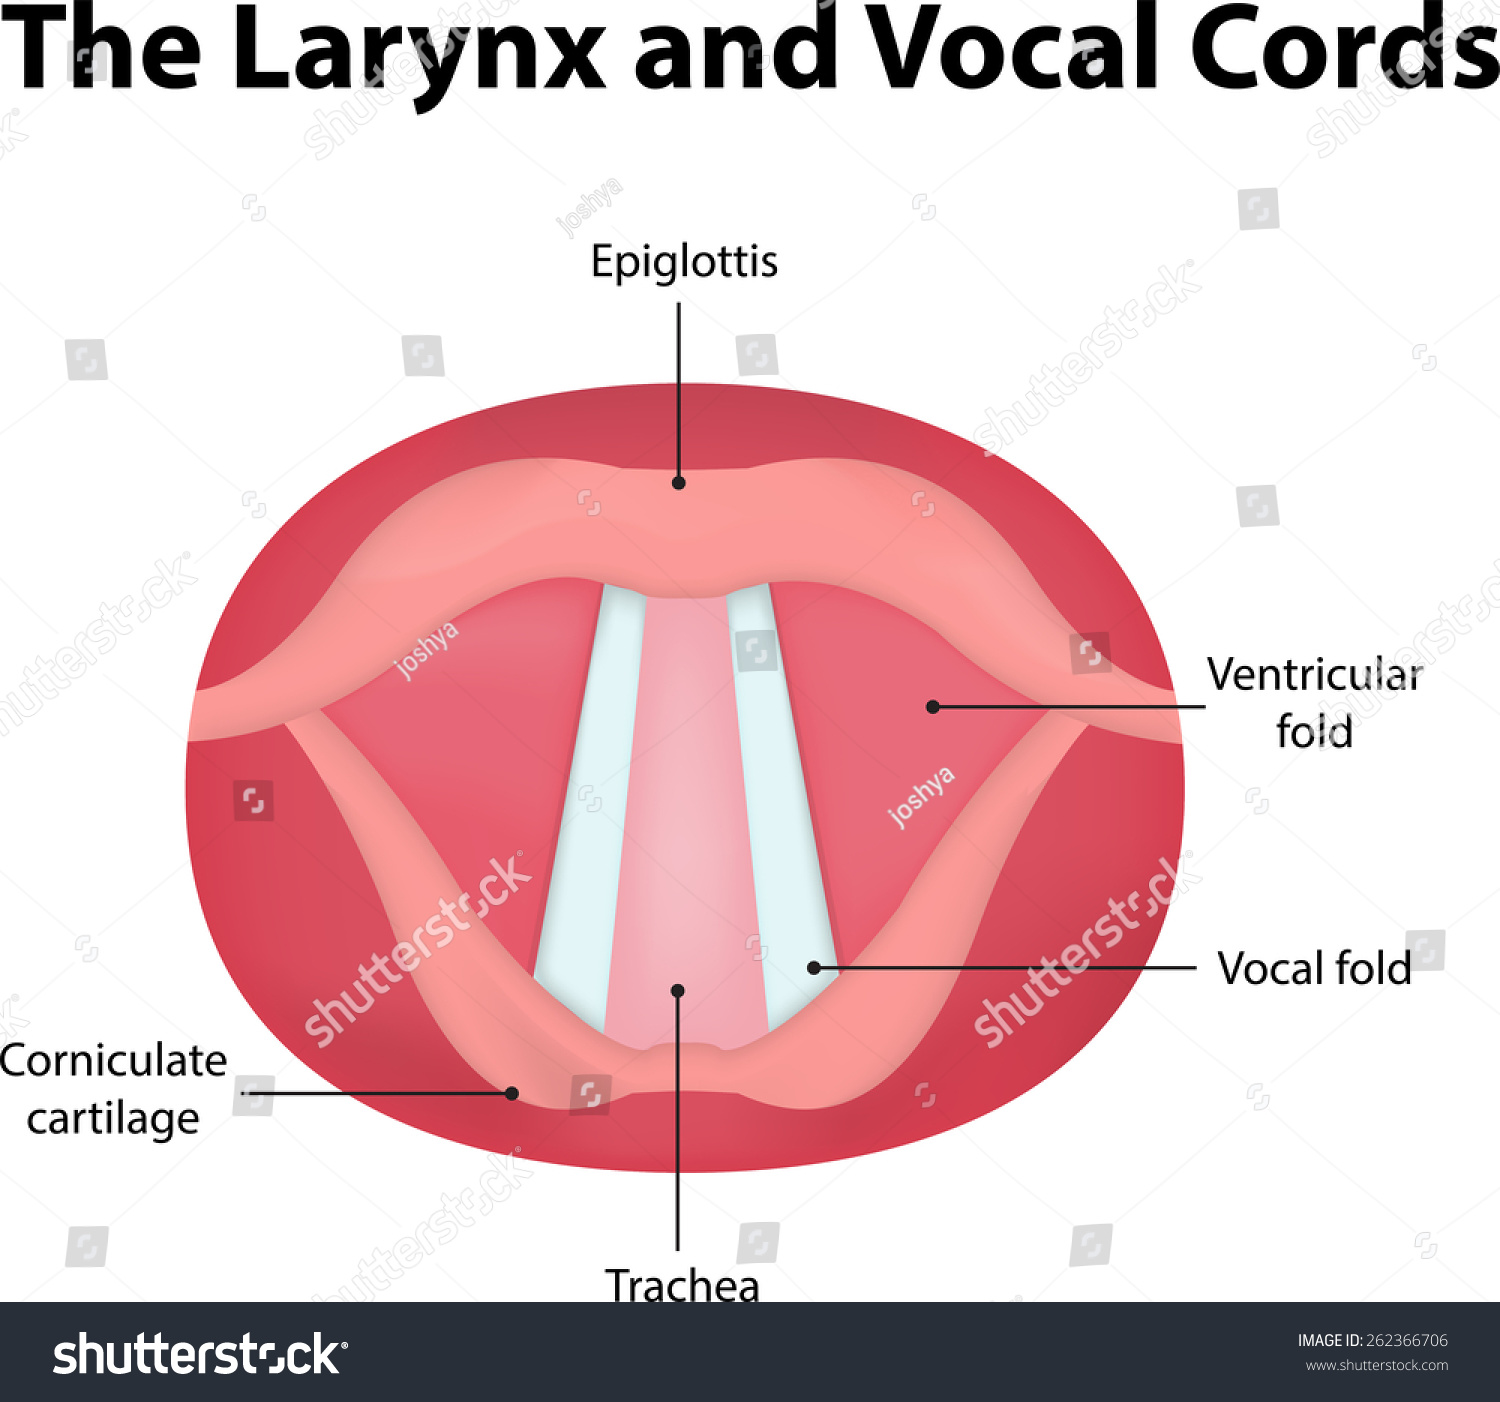 hight resolution of larynx vocal cord labeled diagram stock vector royalty free posterior view of vocal folds vocal folds diagram